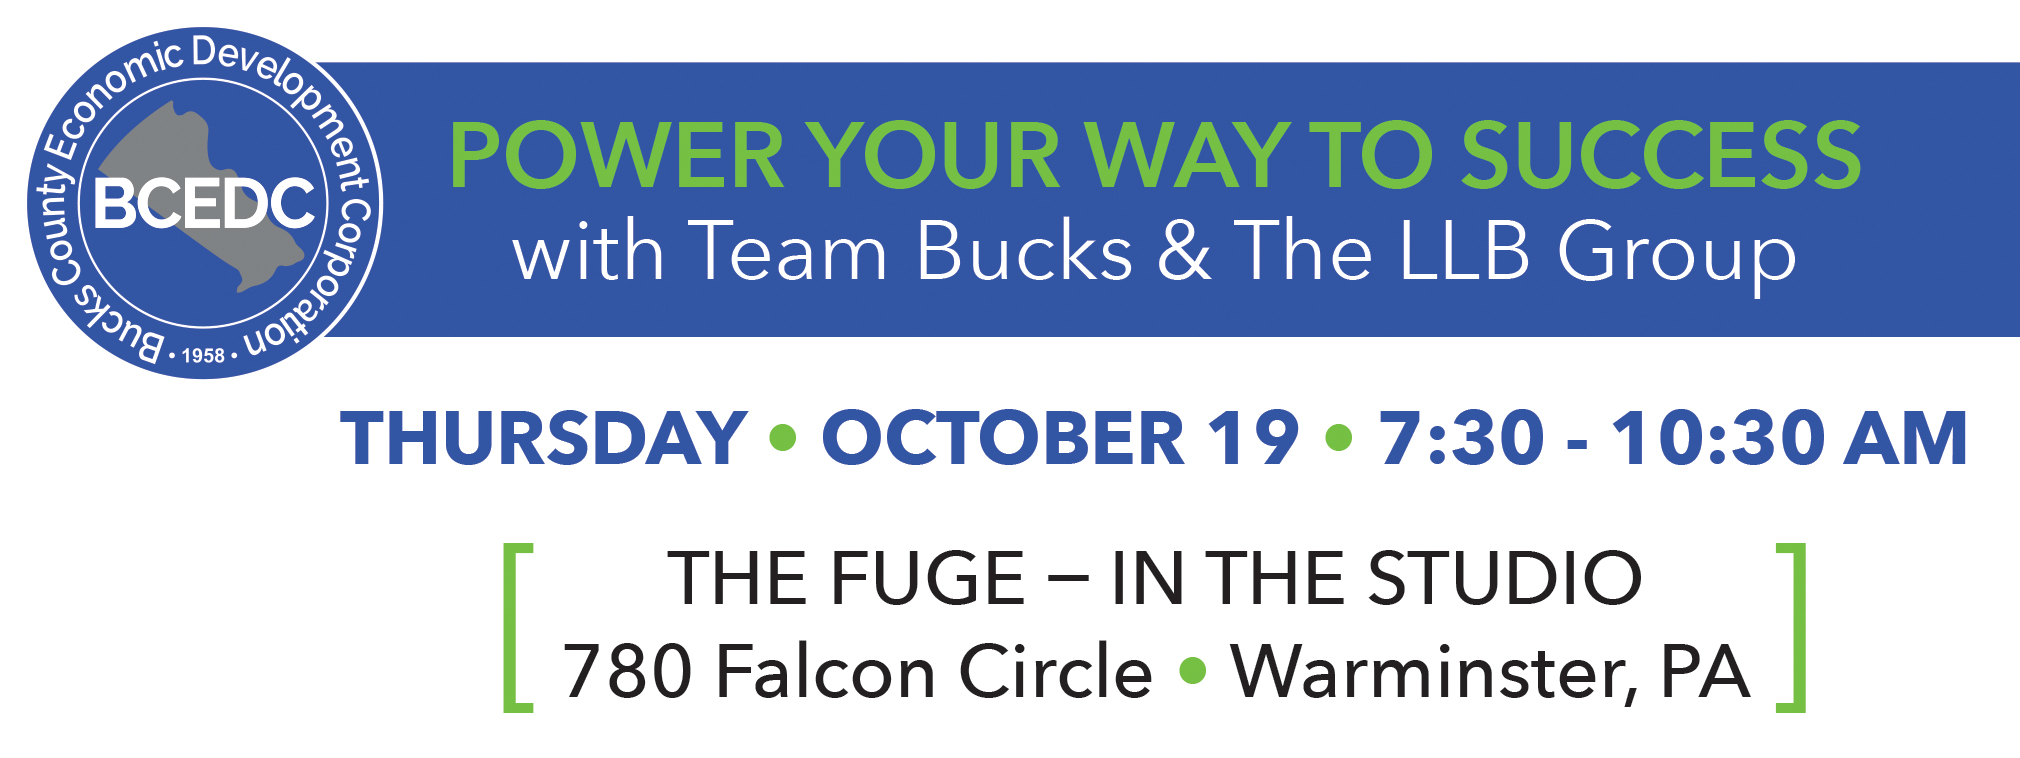 Team Bucks Small Business Resources Event